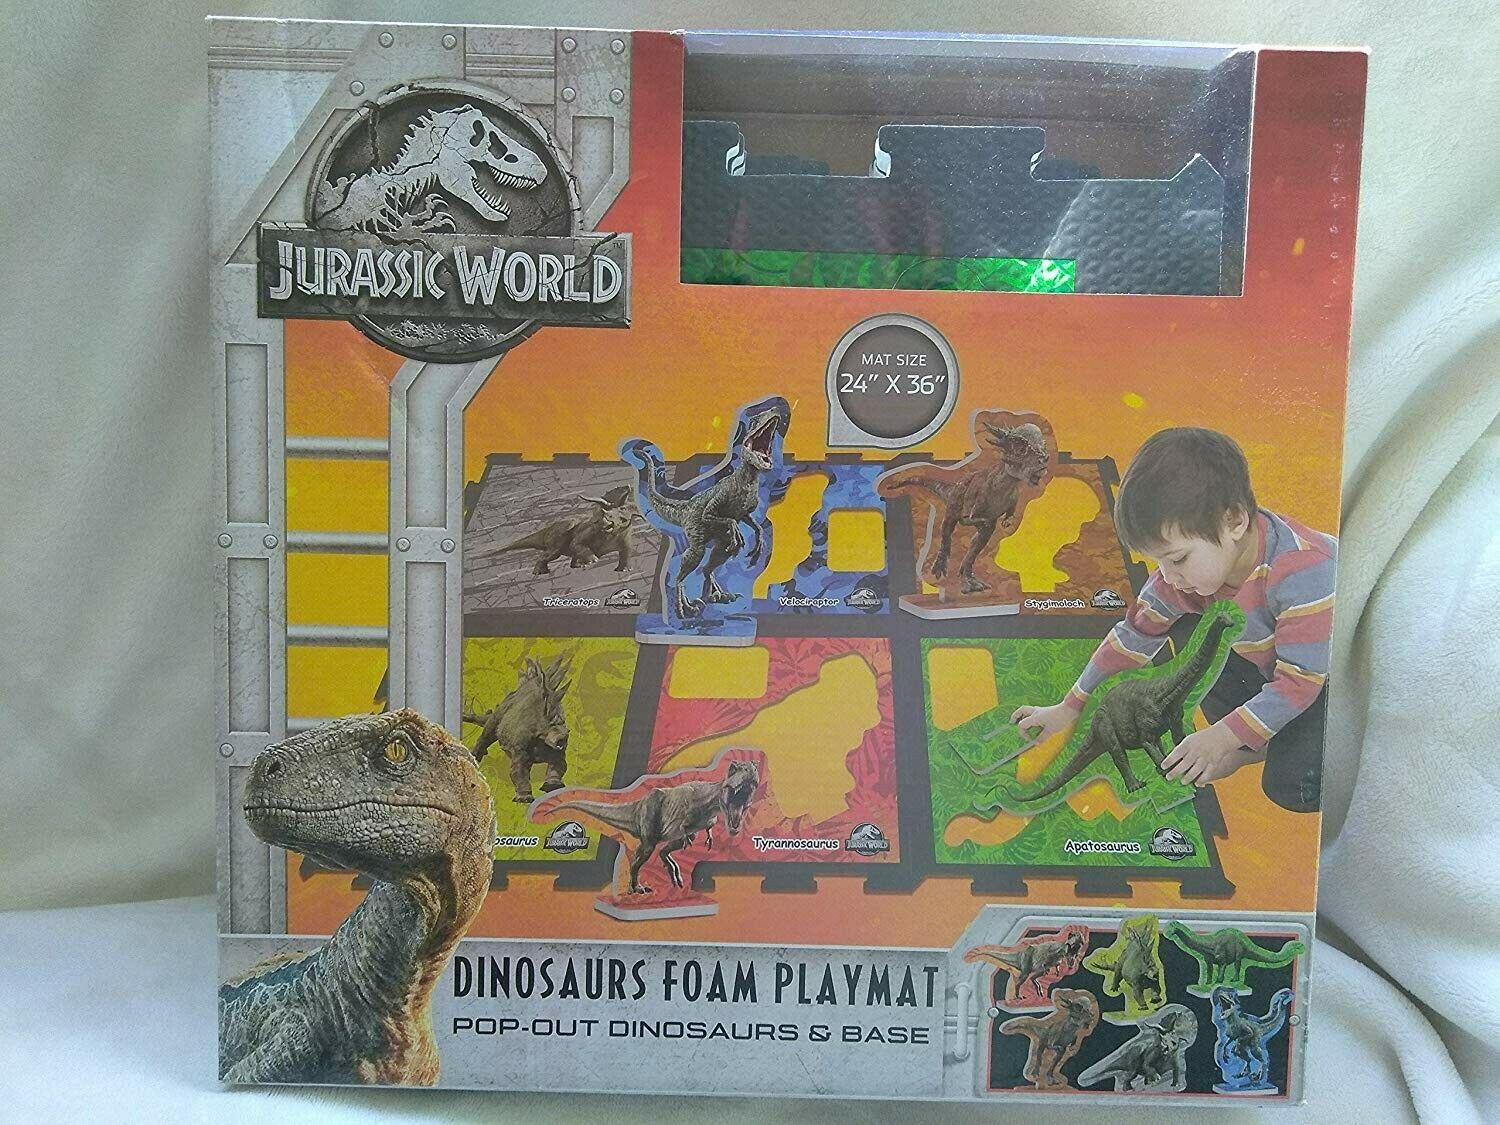 Jurassic World Dinosaurs Foam Playmat with 6 Pop-Out Dinosaurs & & & Base 1cd19d